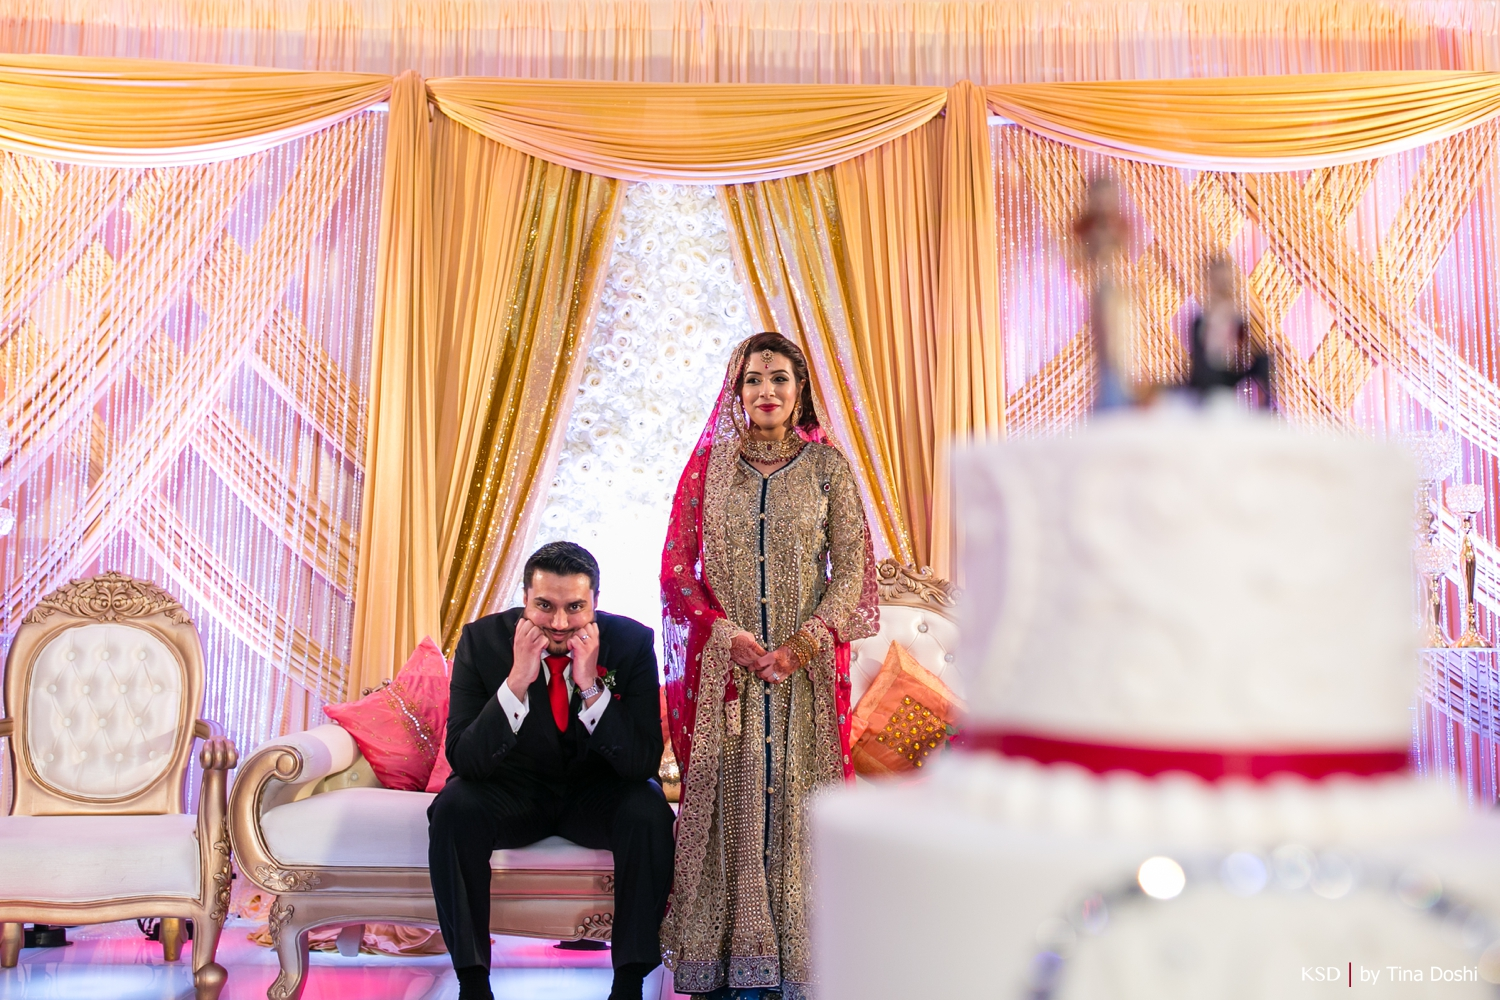 nj_south_asian_wedding_0114